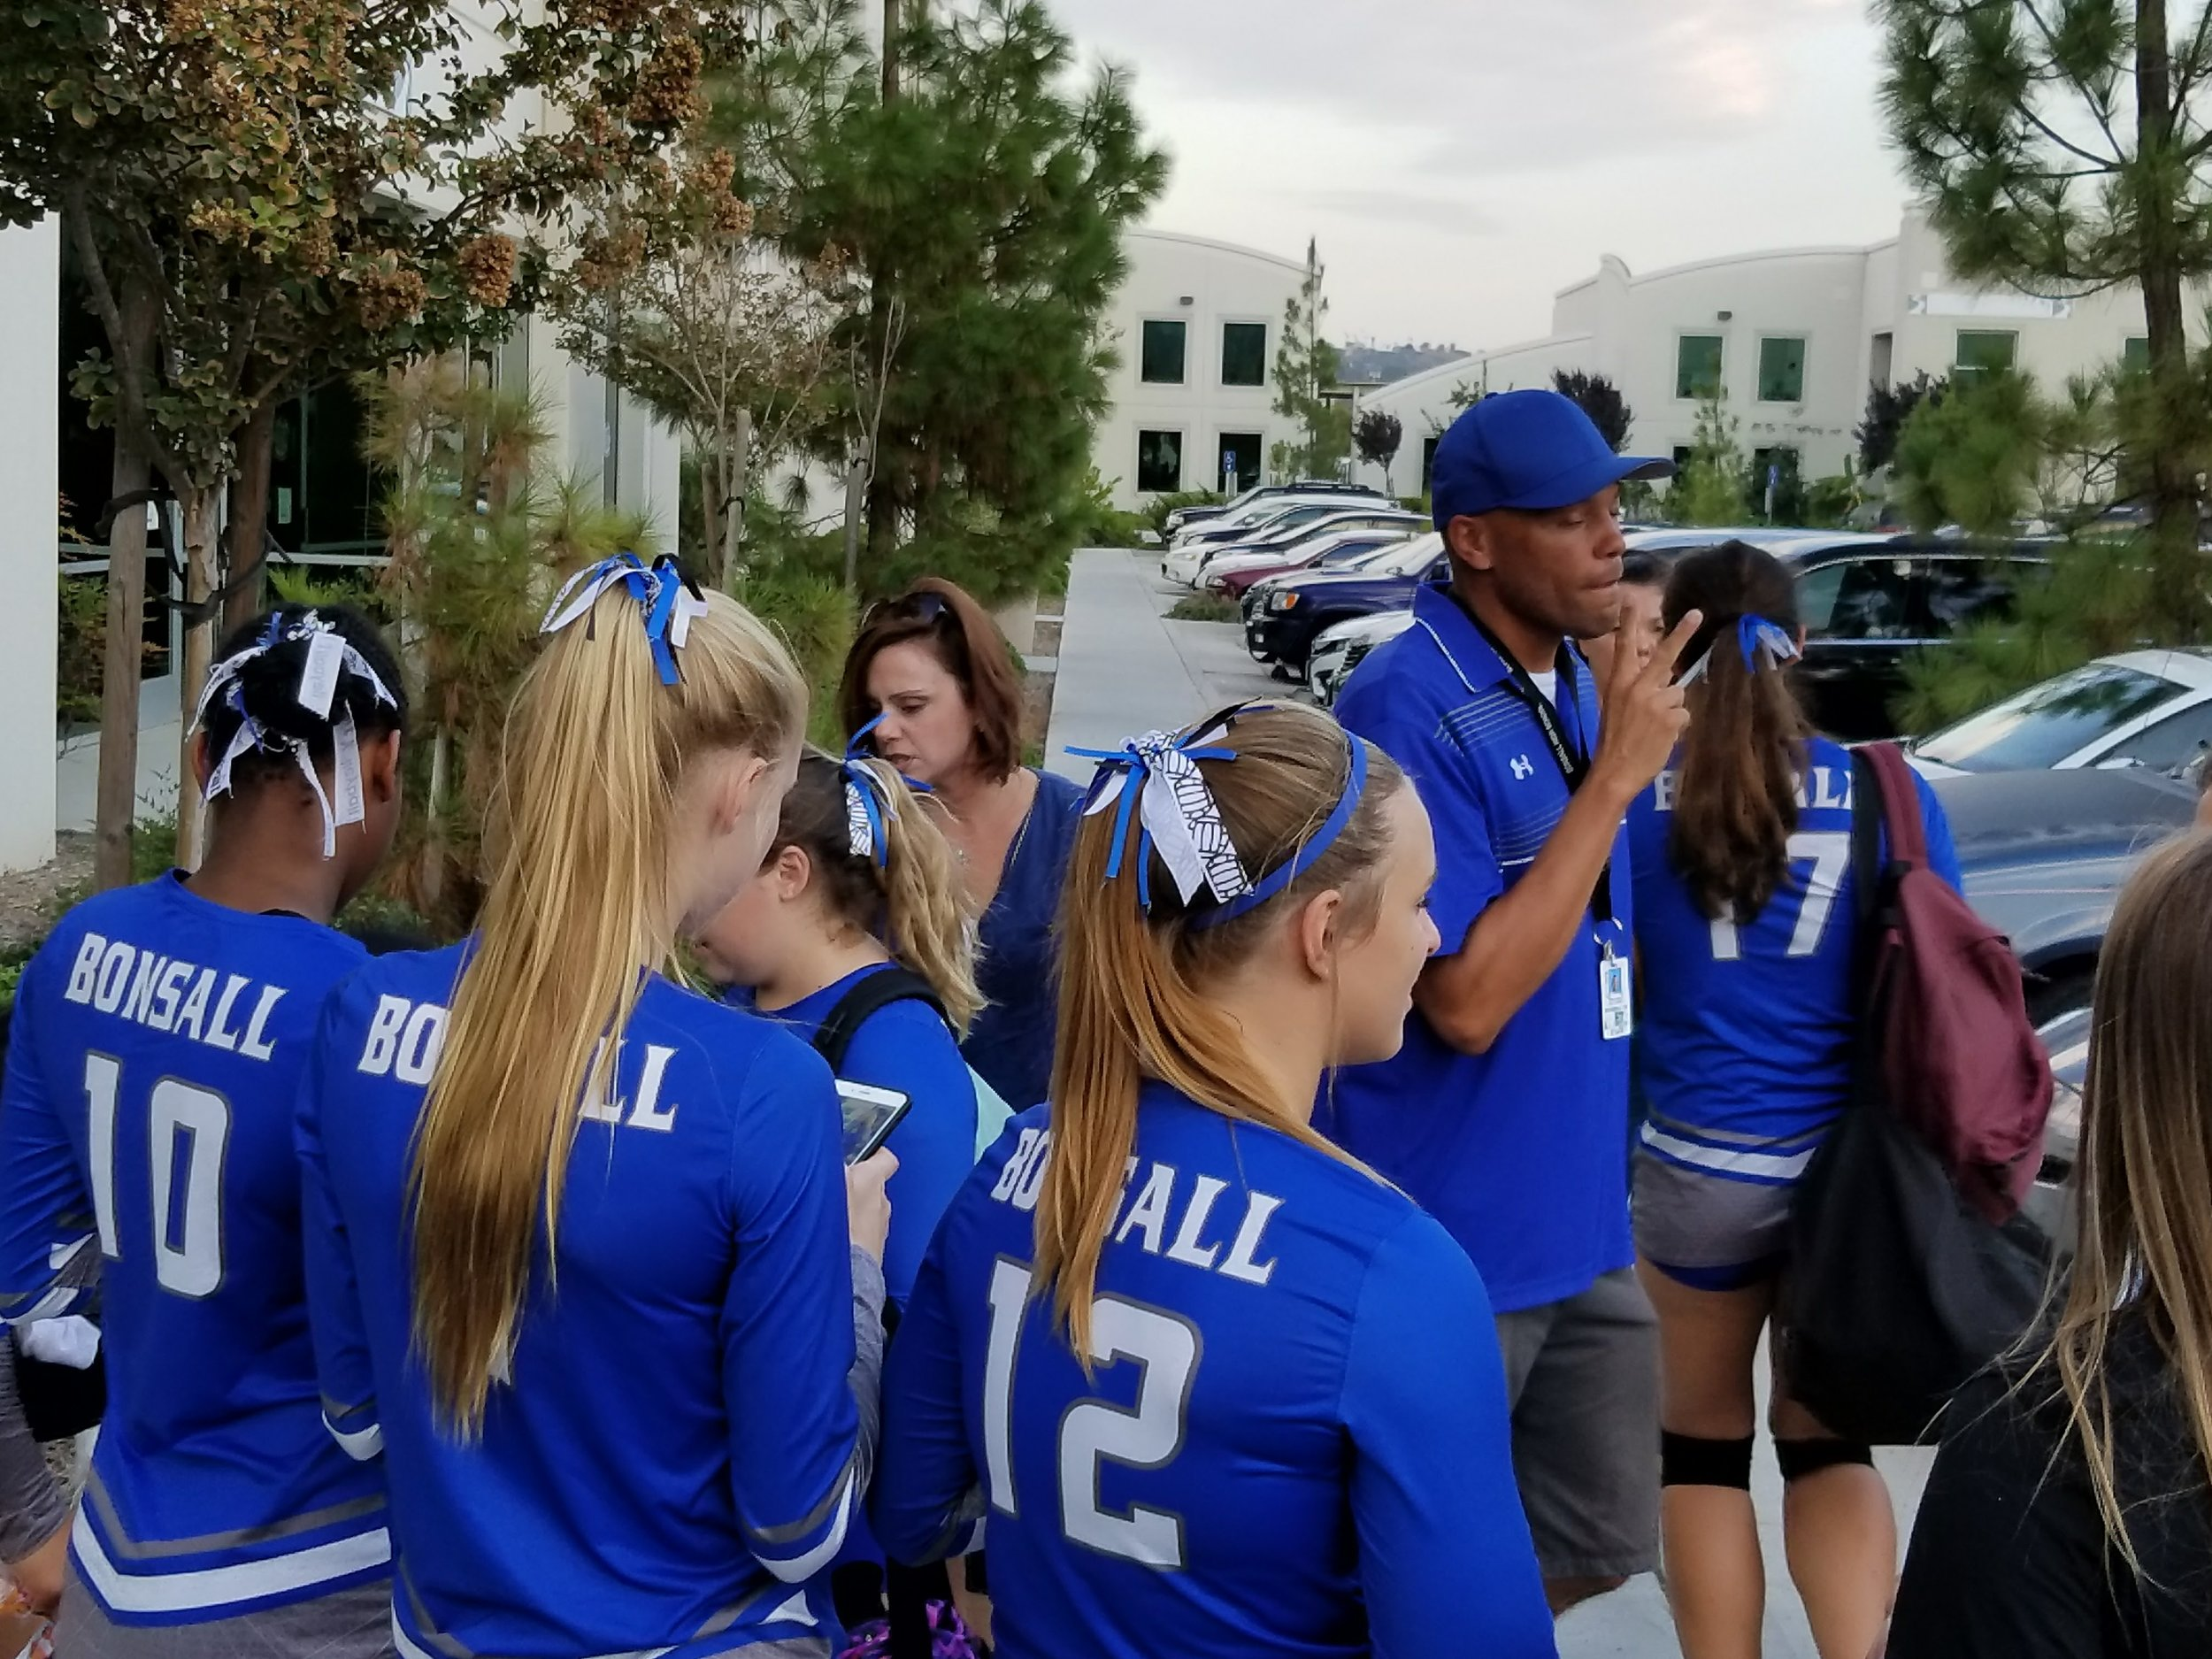 Coach Hendy congratulates the team after their BIG Victory over River Valley, 9/8/17. Bonsall prevailed in a best 3 out of 5 match in their first competition of the pre-season. The team won in 4 games, 23:25, 25:14, 25:20, 25:16.  Ahead in the first game 23:22, the Legion stumbled with 3 unforced errors, but roared back to dominate in the second game and close out the remaining two. River Valley put up a valiant effort but fell short in the remaining games.